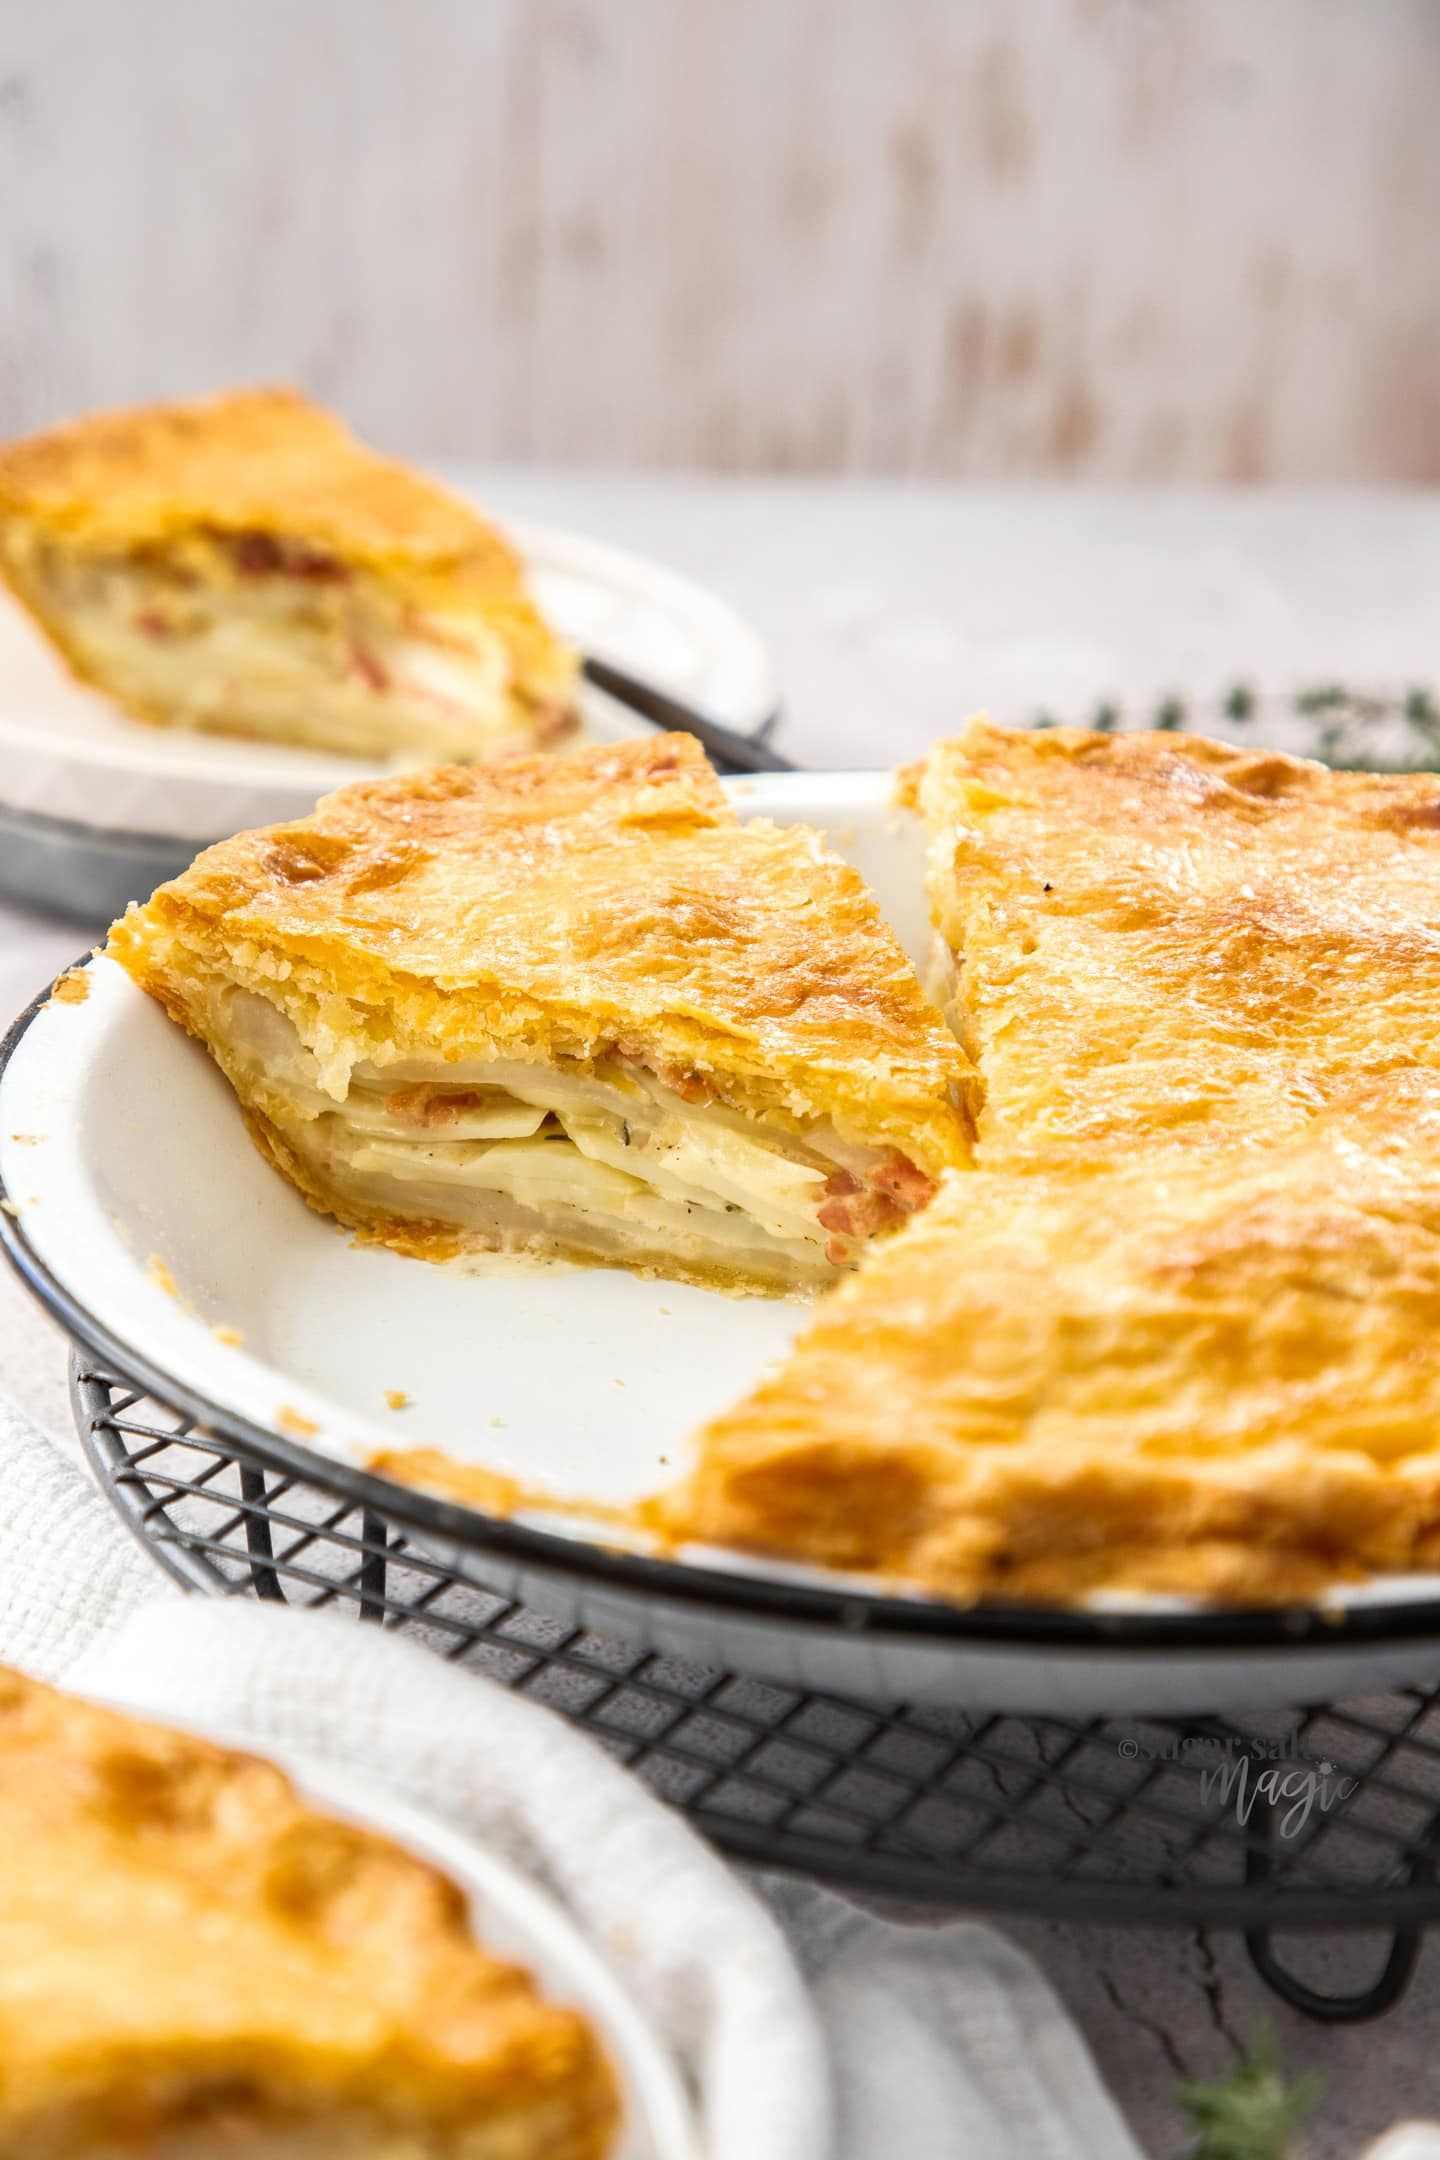 A potato pie in a pie tin with slices cut from it.